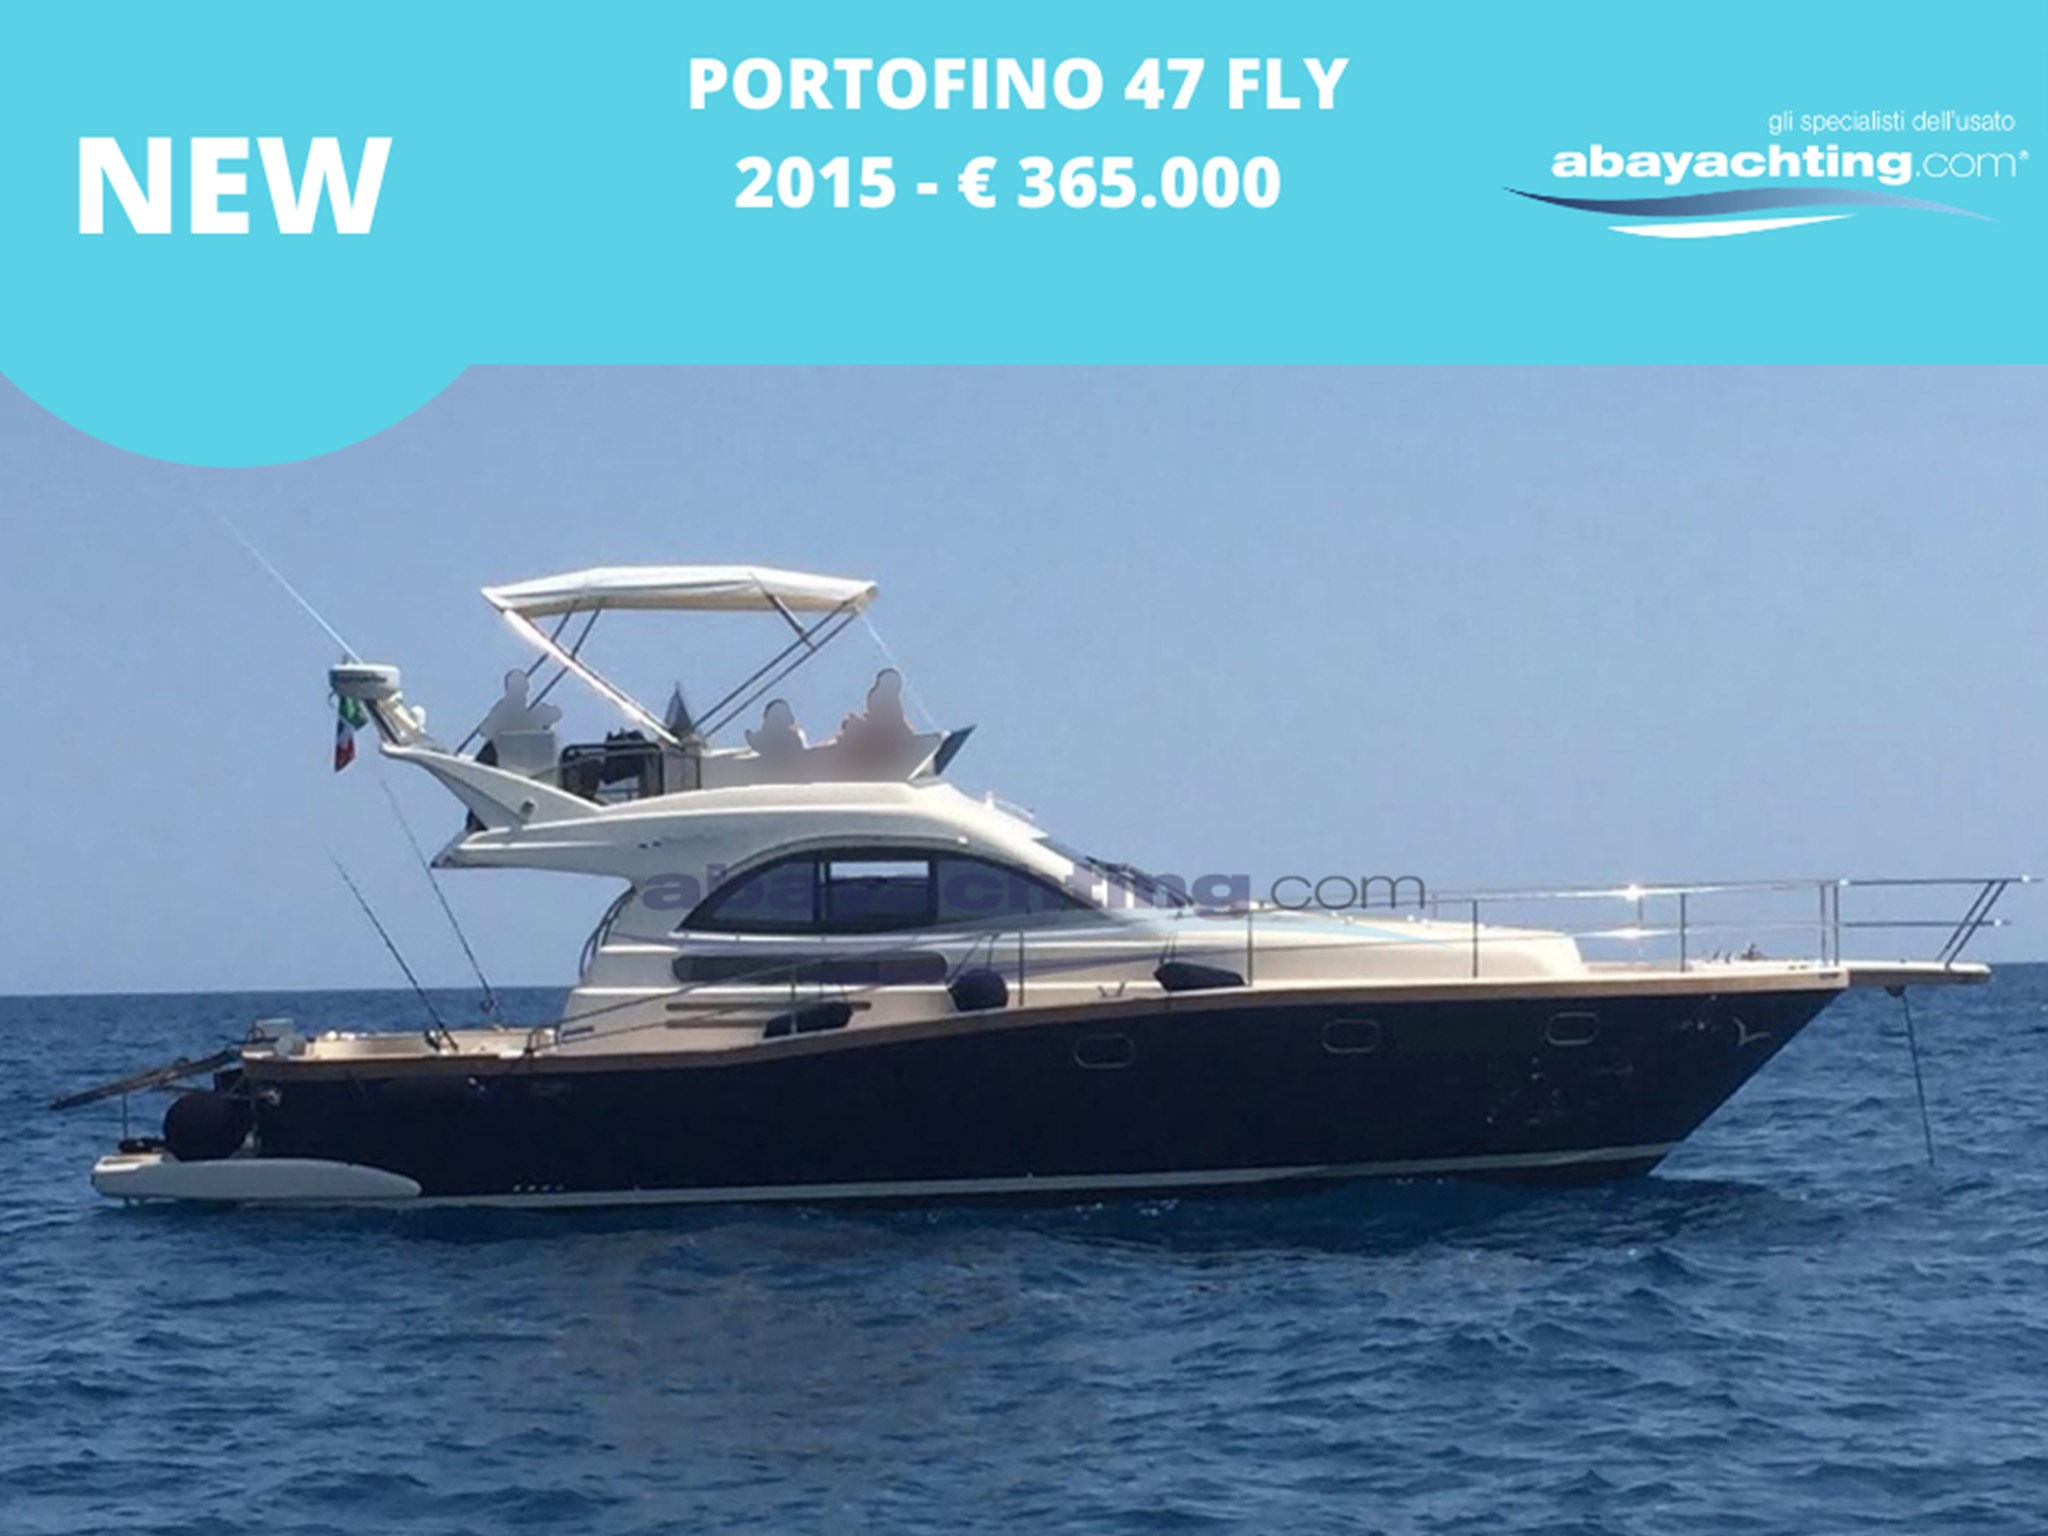 New arrival Portofino 47 Fly